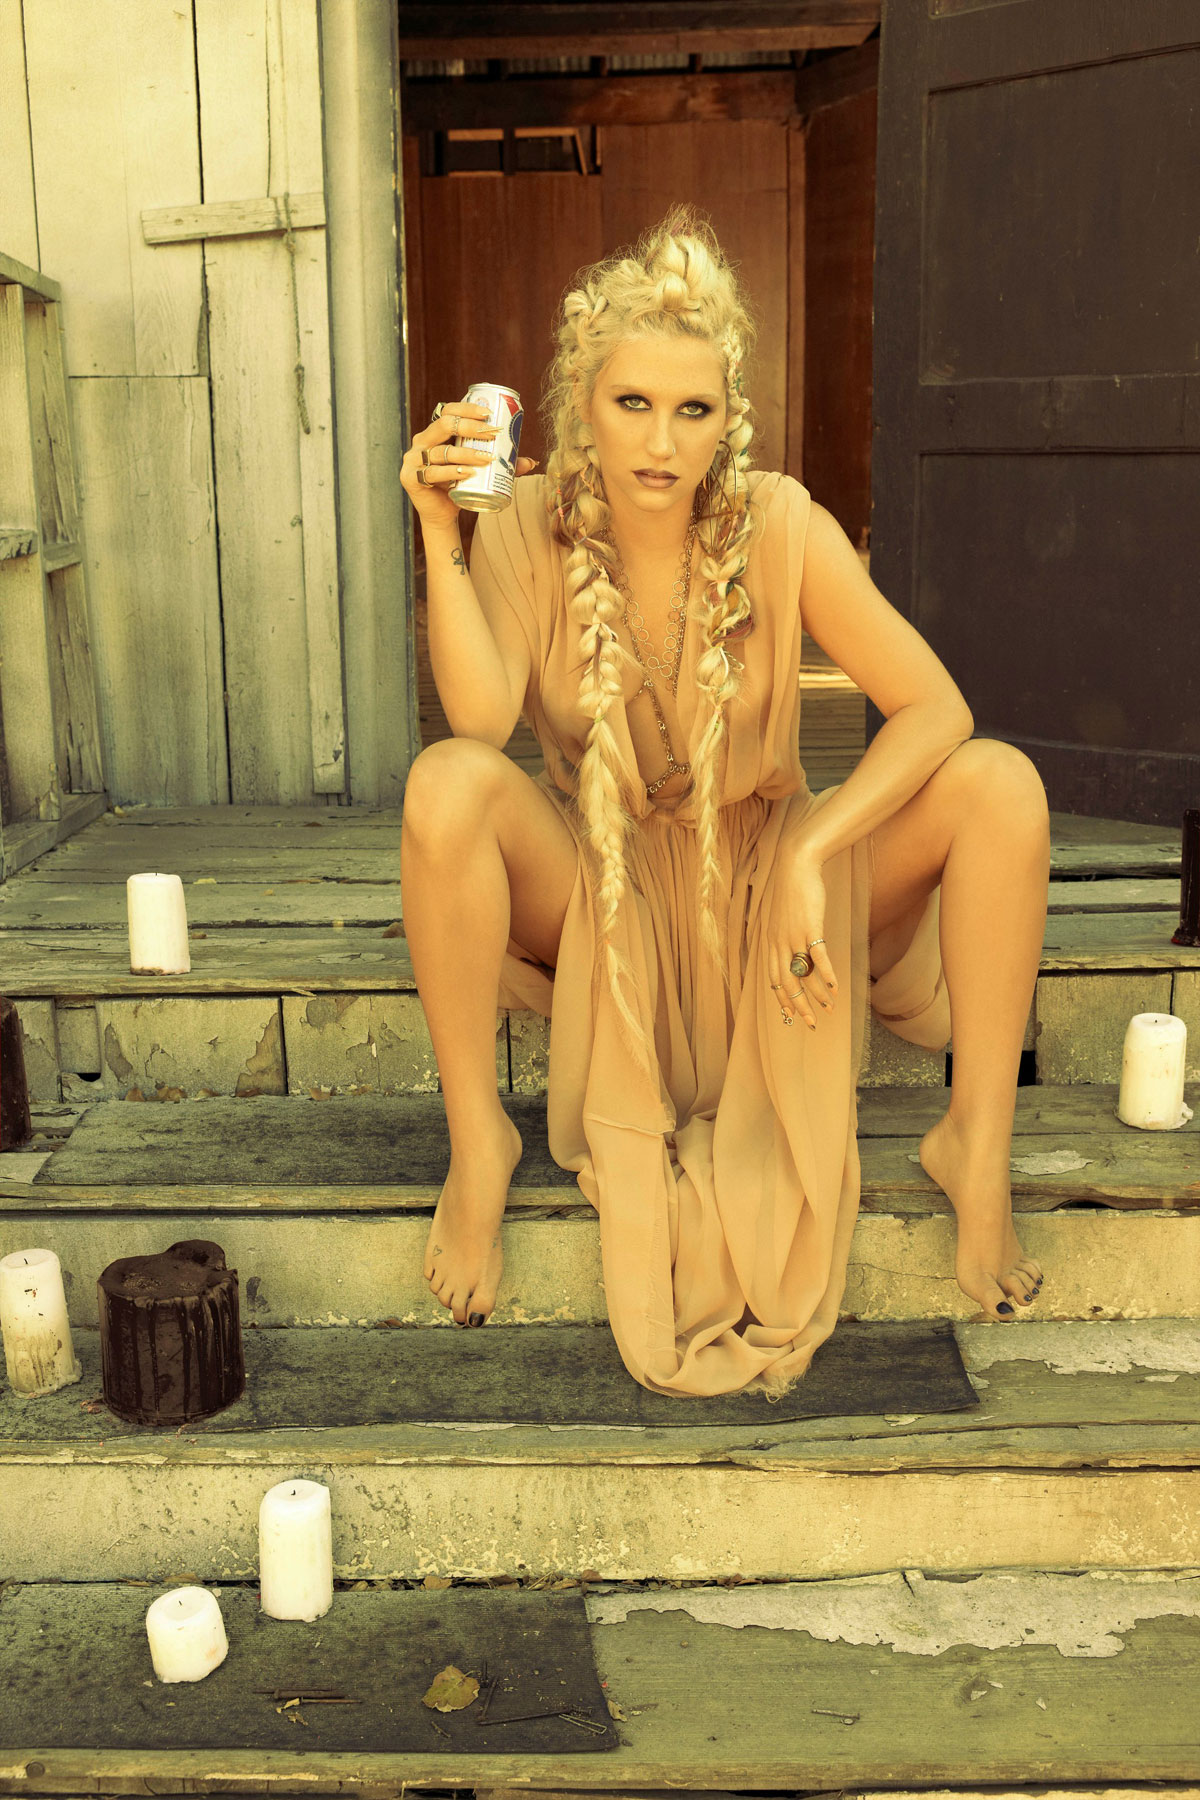 KESHA SEBERT in Yu Tsai Photoshoot for Her New Album, Warrior